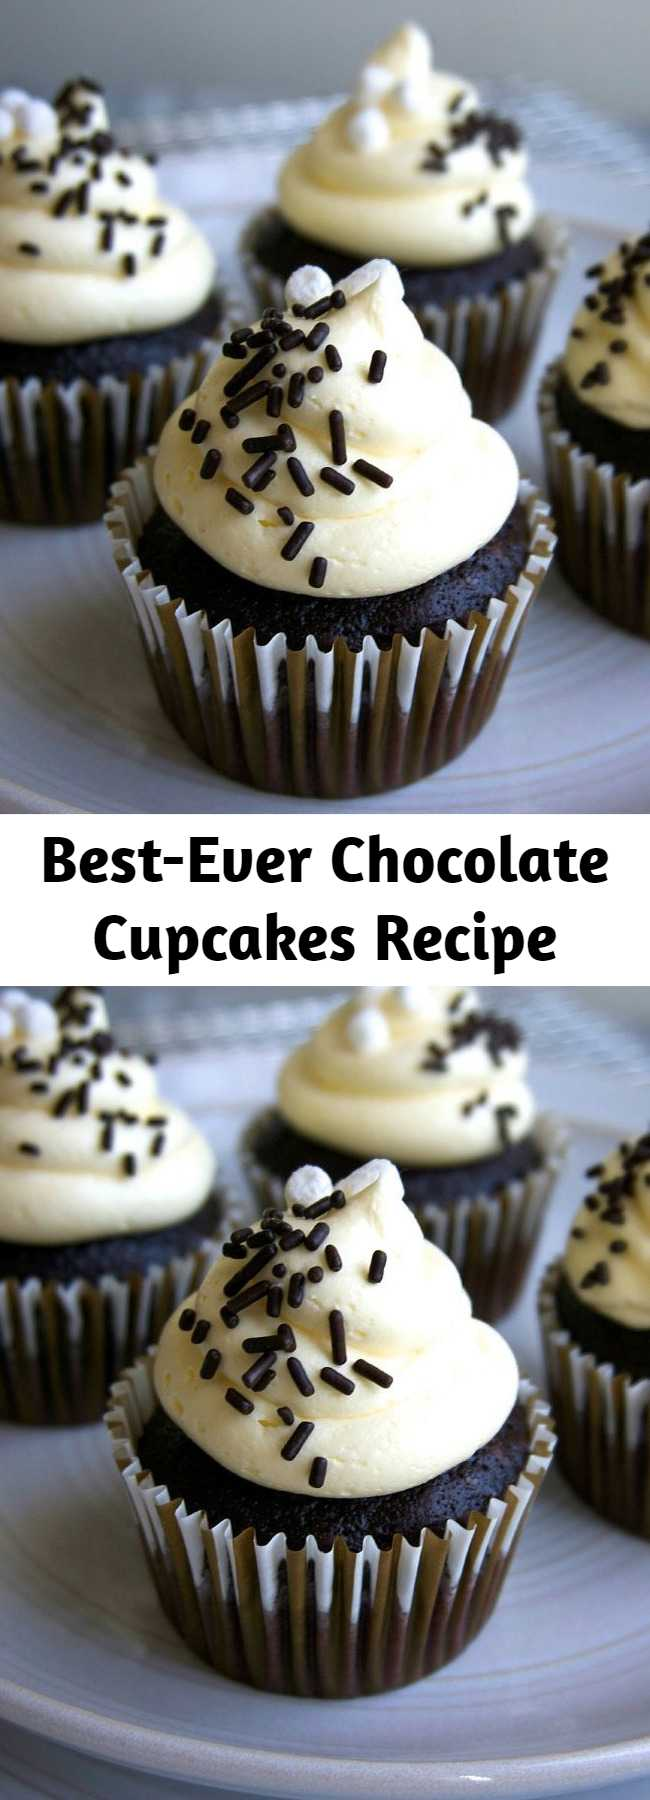 Best-Ever Chocolate Cupcakes Recipe - A simple, no-fuss chocolate cupcake that's intensely chocolate-y!